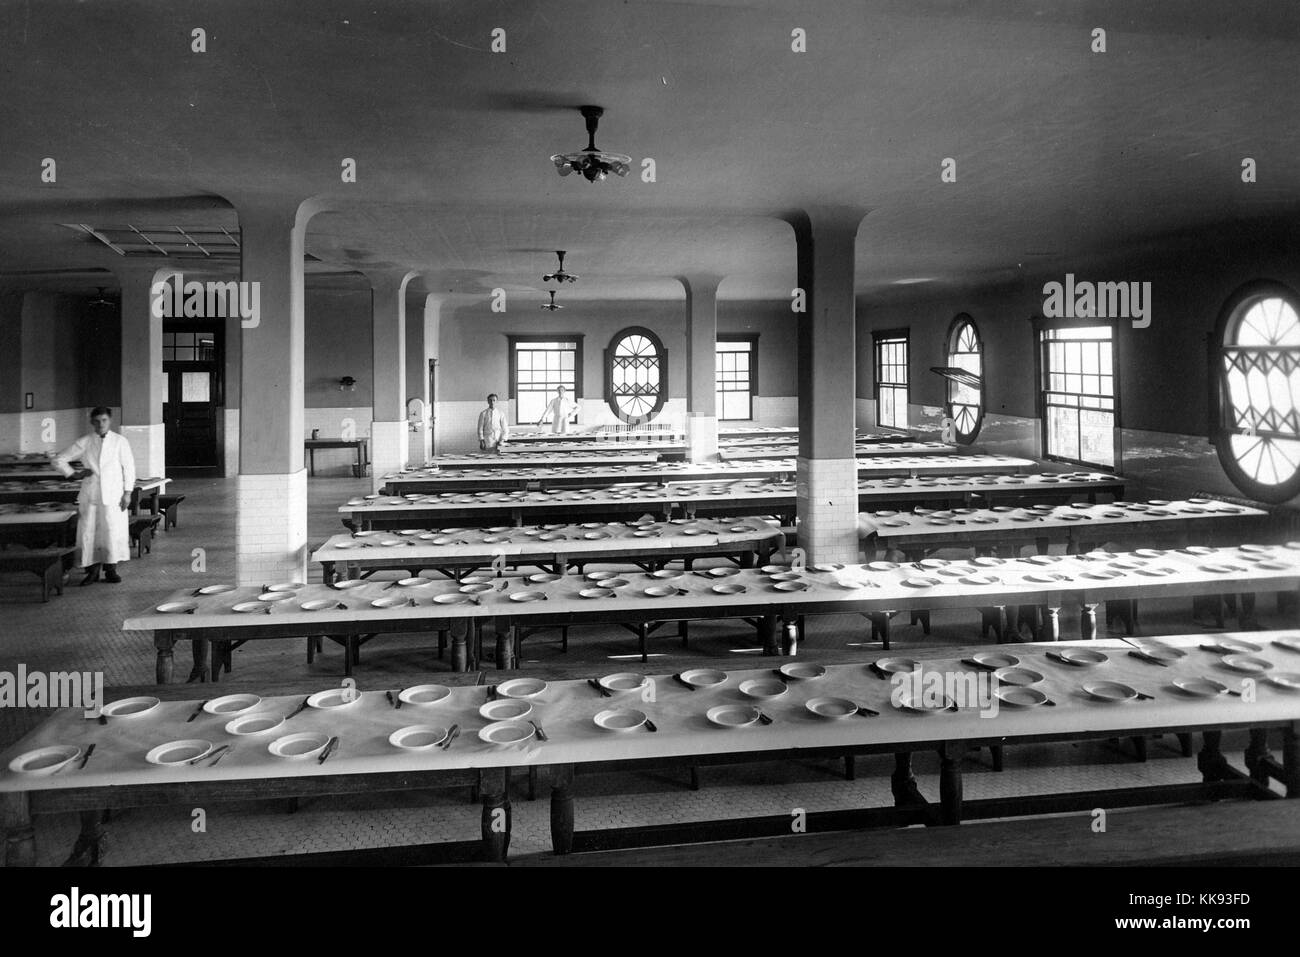 Black and white photograph of the dinning hall on ellis island